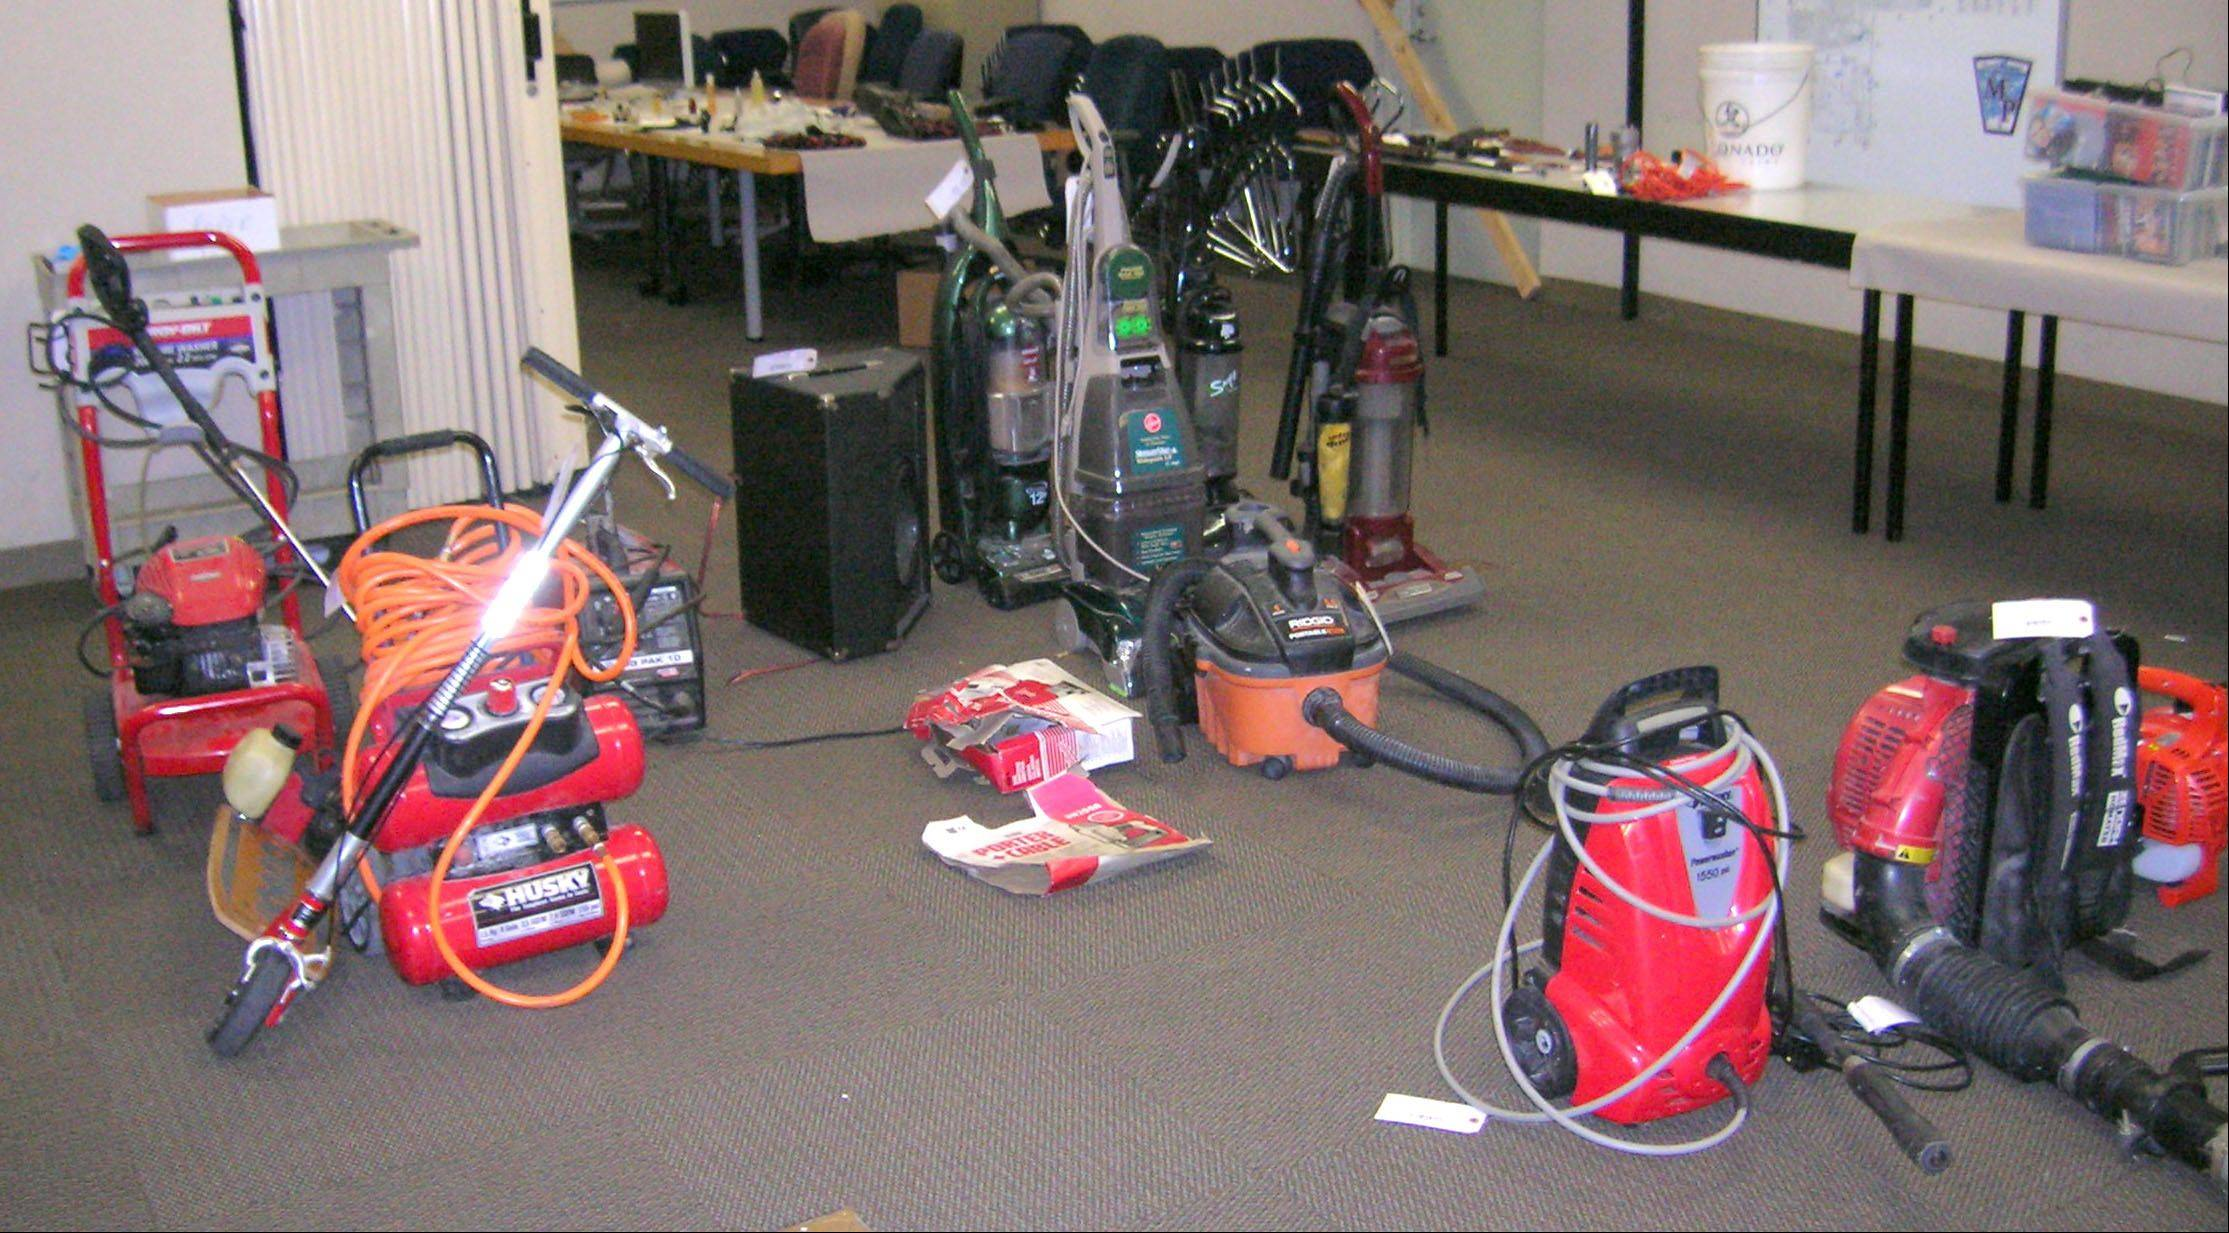 The Mount Prospect police training room is filled with stolen items recovered from a home where three residents were arrested Wednesday in connection with a string of 60 burglaries.